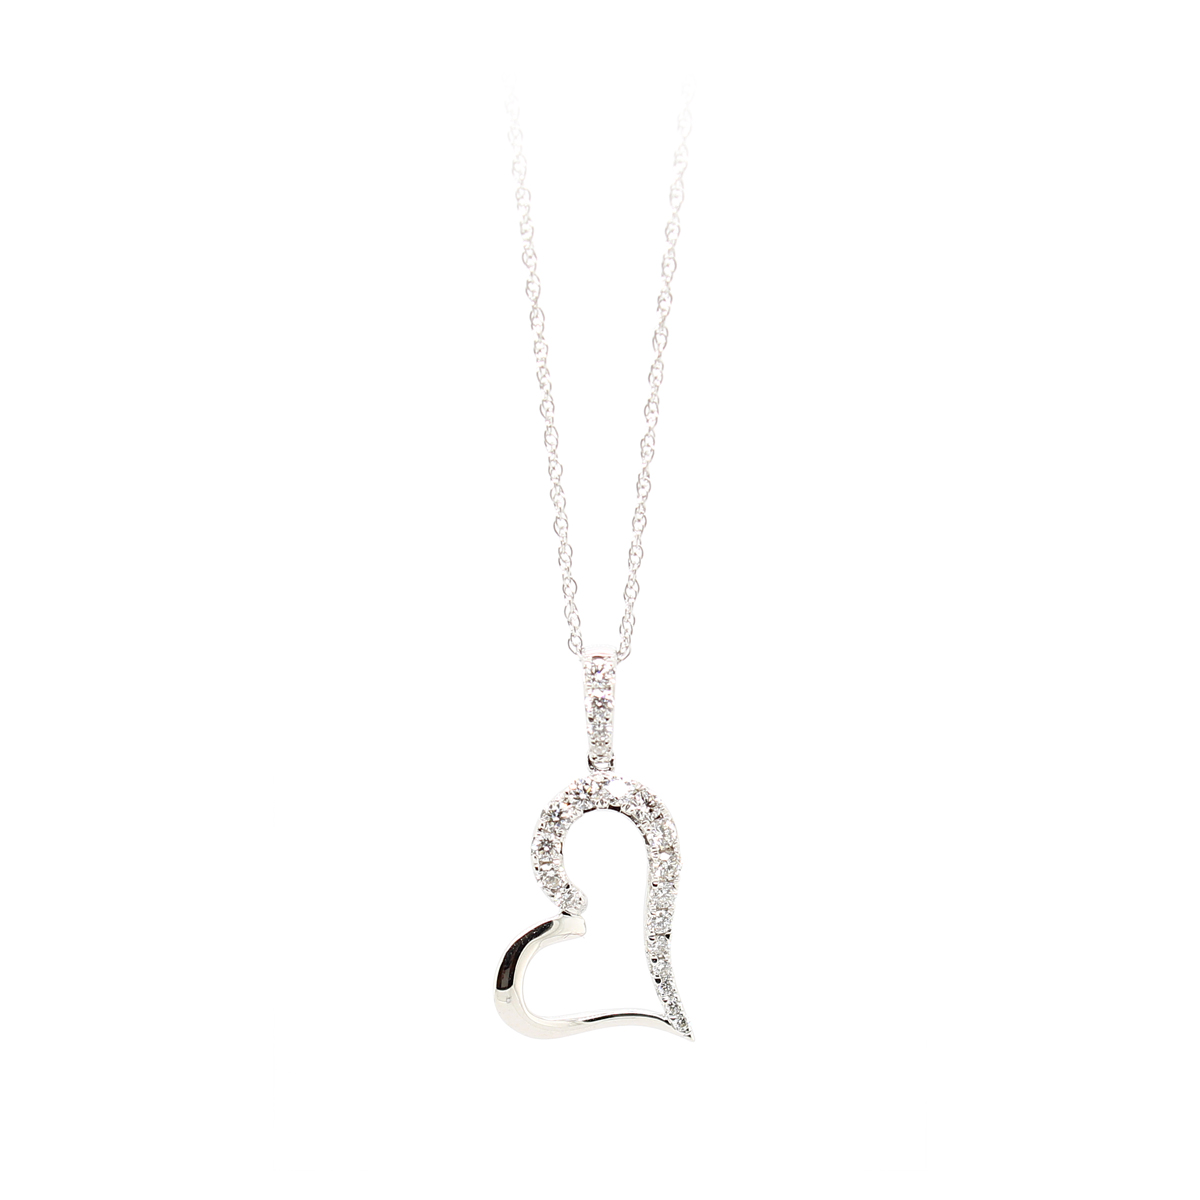 18 Karat White Gold Cutout Small Heart Diamond Pendant Necklace